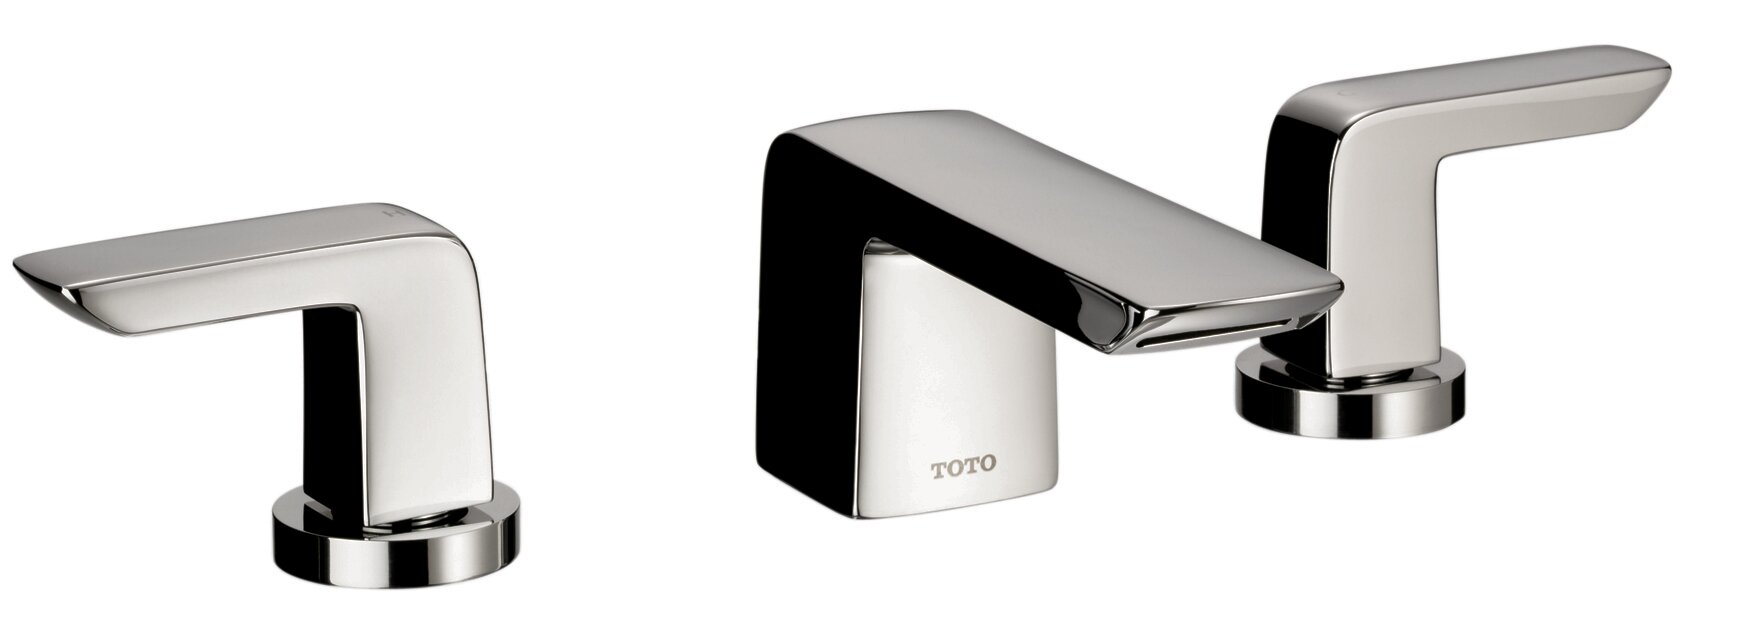 Toto Soiree Widespread Bathroom Faucet & Reviews | Wayfair